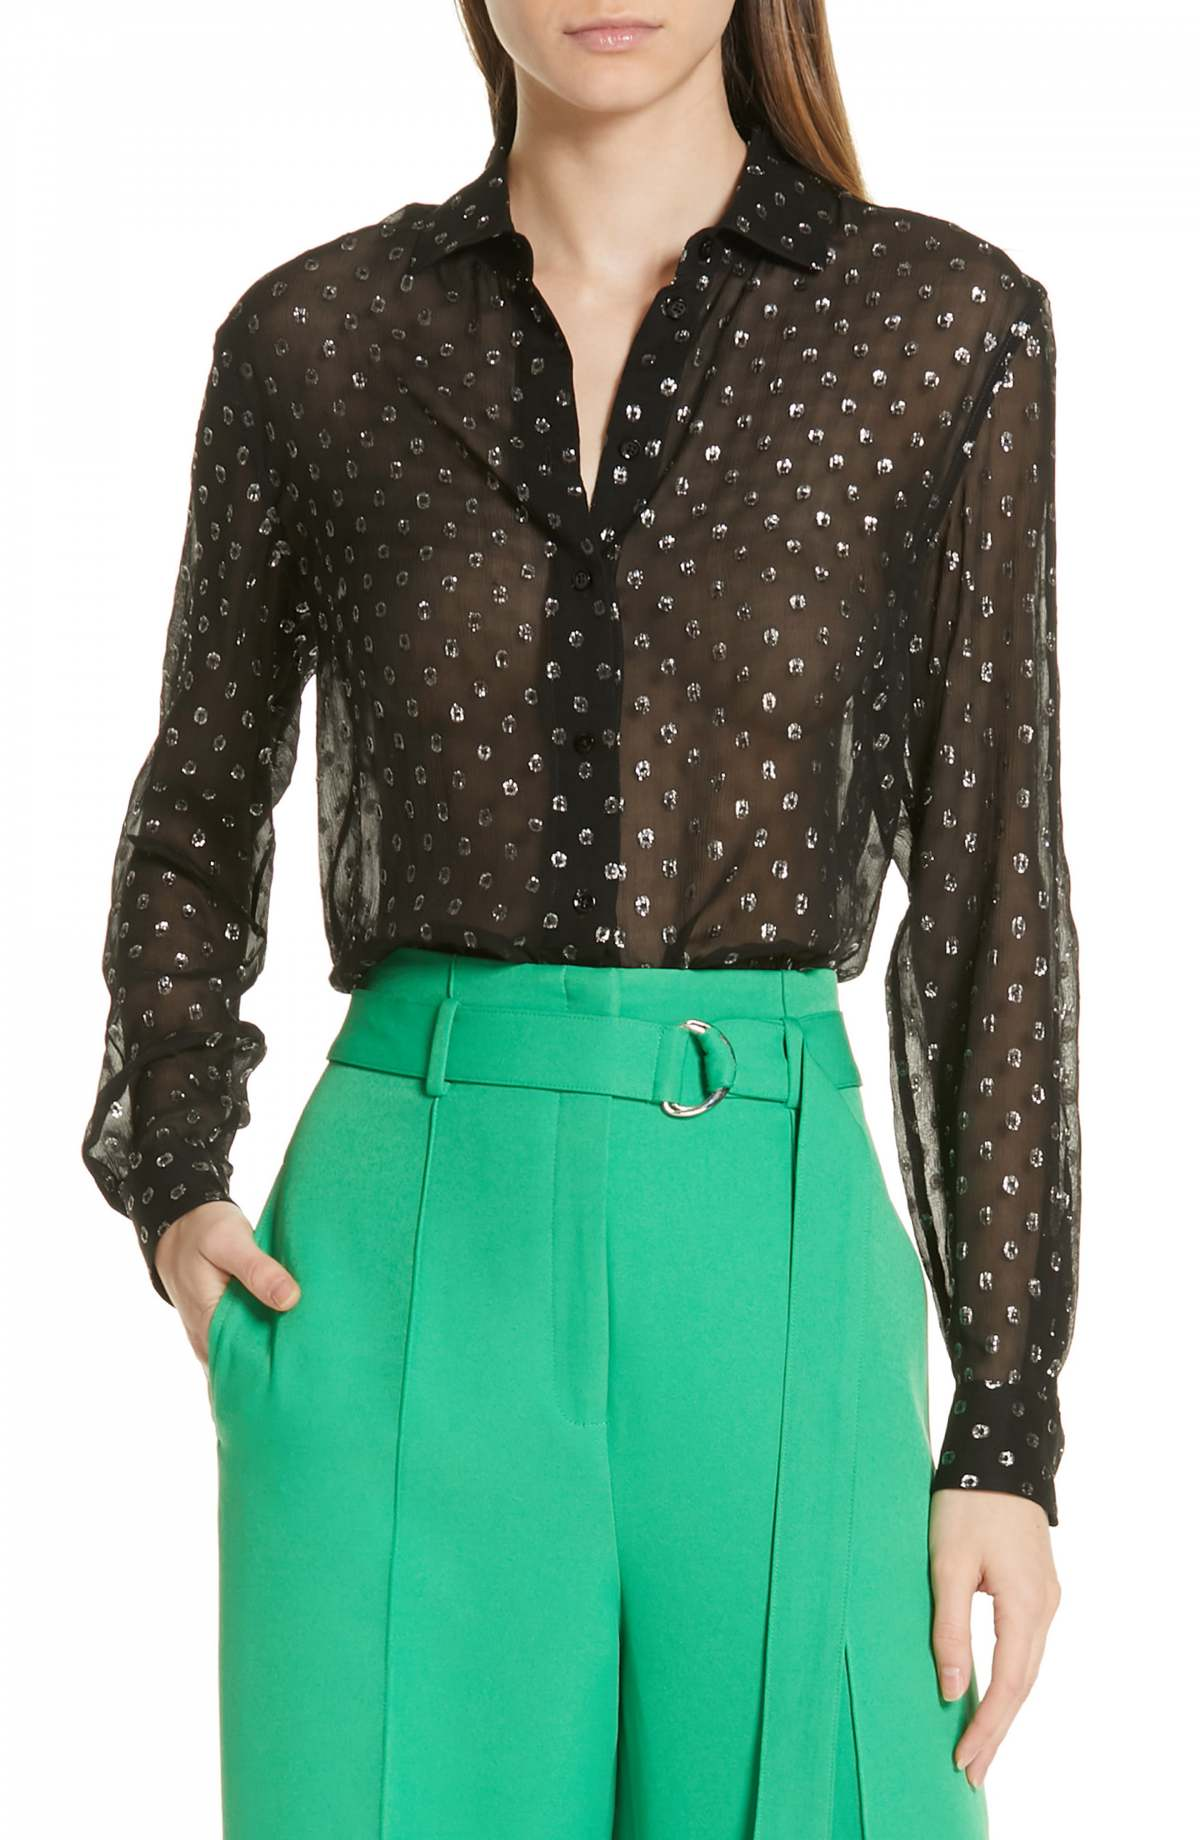 Robert Rodriguez Camille Fil Coupé Silk Blend Chiffon Shirt by ROBERT RODRIGUEZ, available on nordstrom.com for $365 Kendall Jenner Top SIMILAR PRODUCT